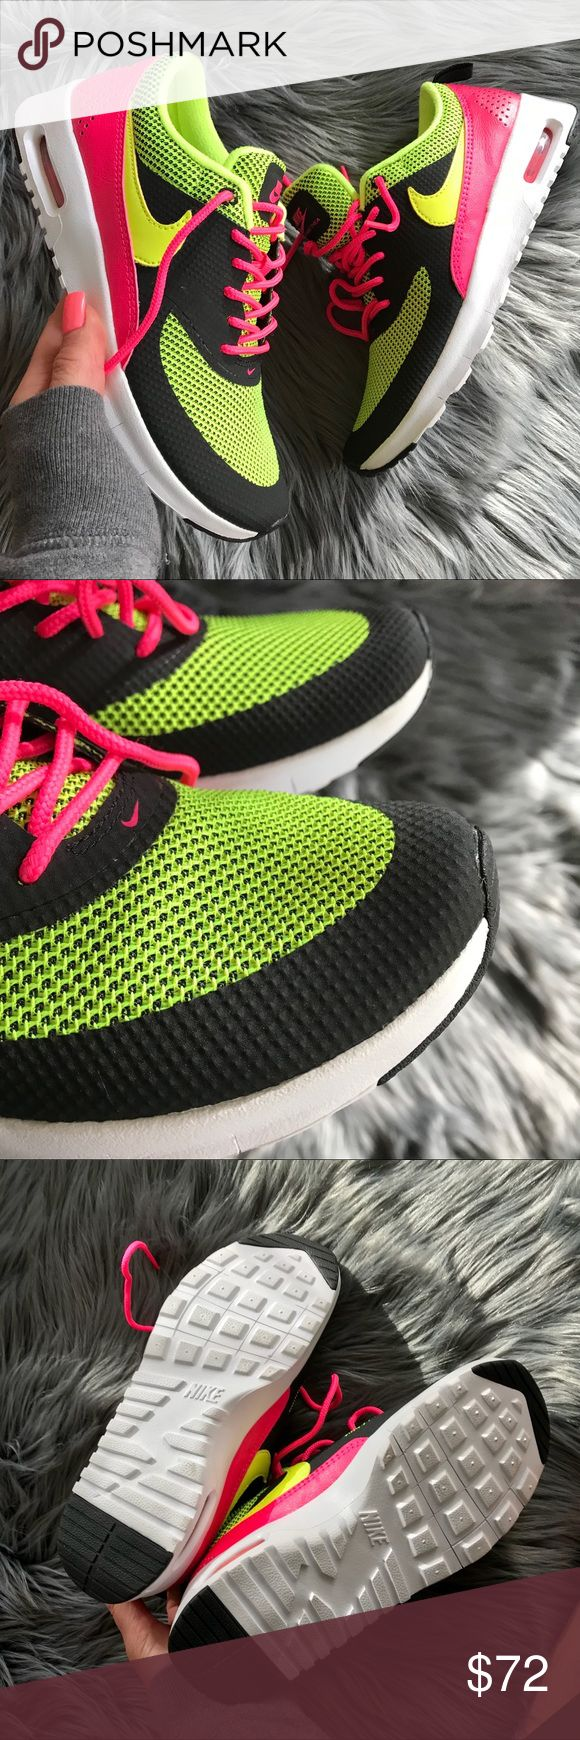 NEW 💥 NIKE AIR MAX THEA FITS WOMENS SZ 5 ⚡️ Brand new & never worn. NIKE AIR MAX THEA. GIMMIE ALLL THE NEON COLORS! 😍  ORDER YOUR WOMANS SHOE SIZE  Size 3.5y fits size 5 woman according to Nikes size chart.   Ships same or next day from my smoke free home.  Bundle items to save!  Reasonable offers will be considered through the offer button only 🔥  100% authentic & direct from Nike. Nike Shoes Athletic Shoes